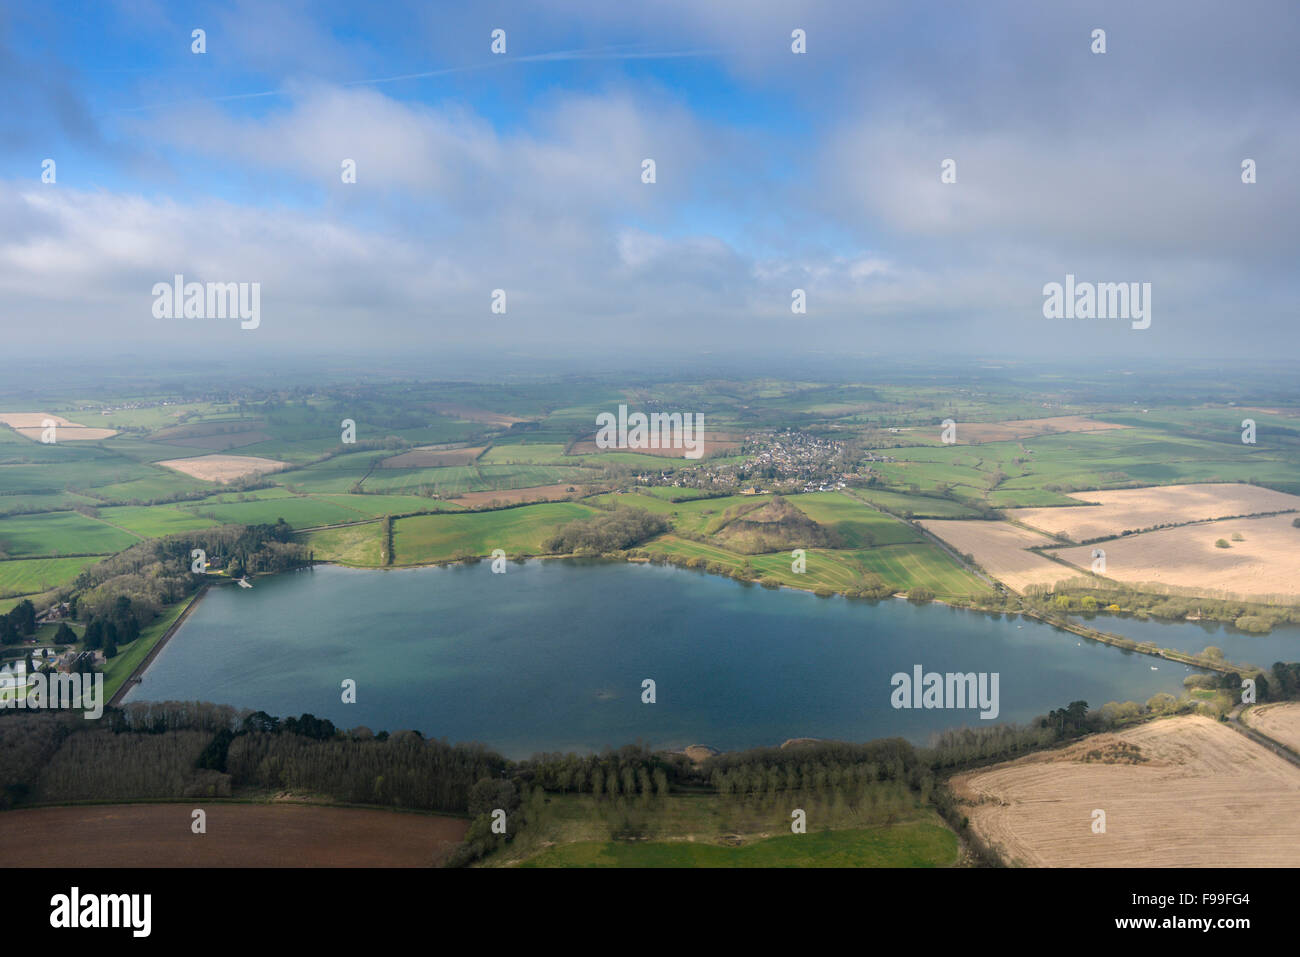 An aerial view of the Ravensthorpe Reservoir in Northamptonshire - Stock Image